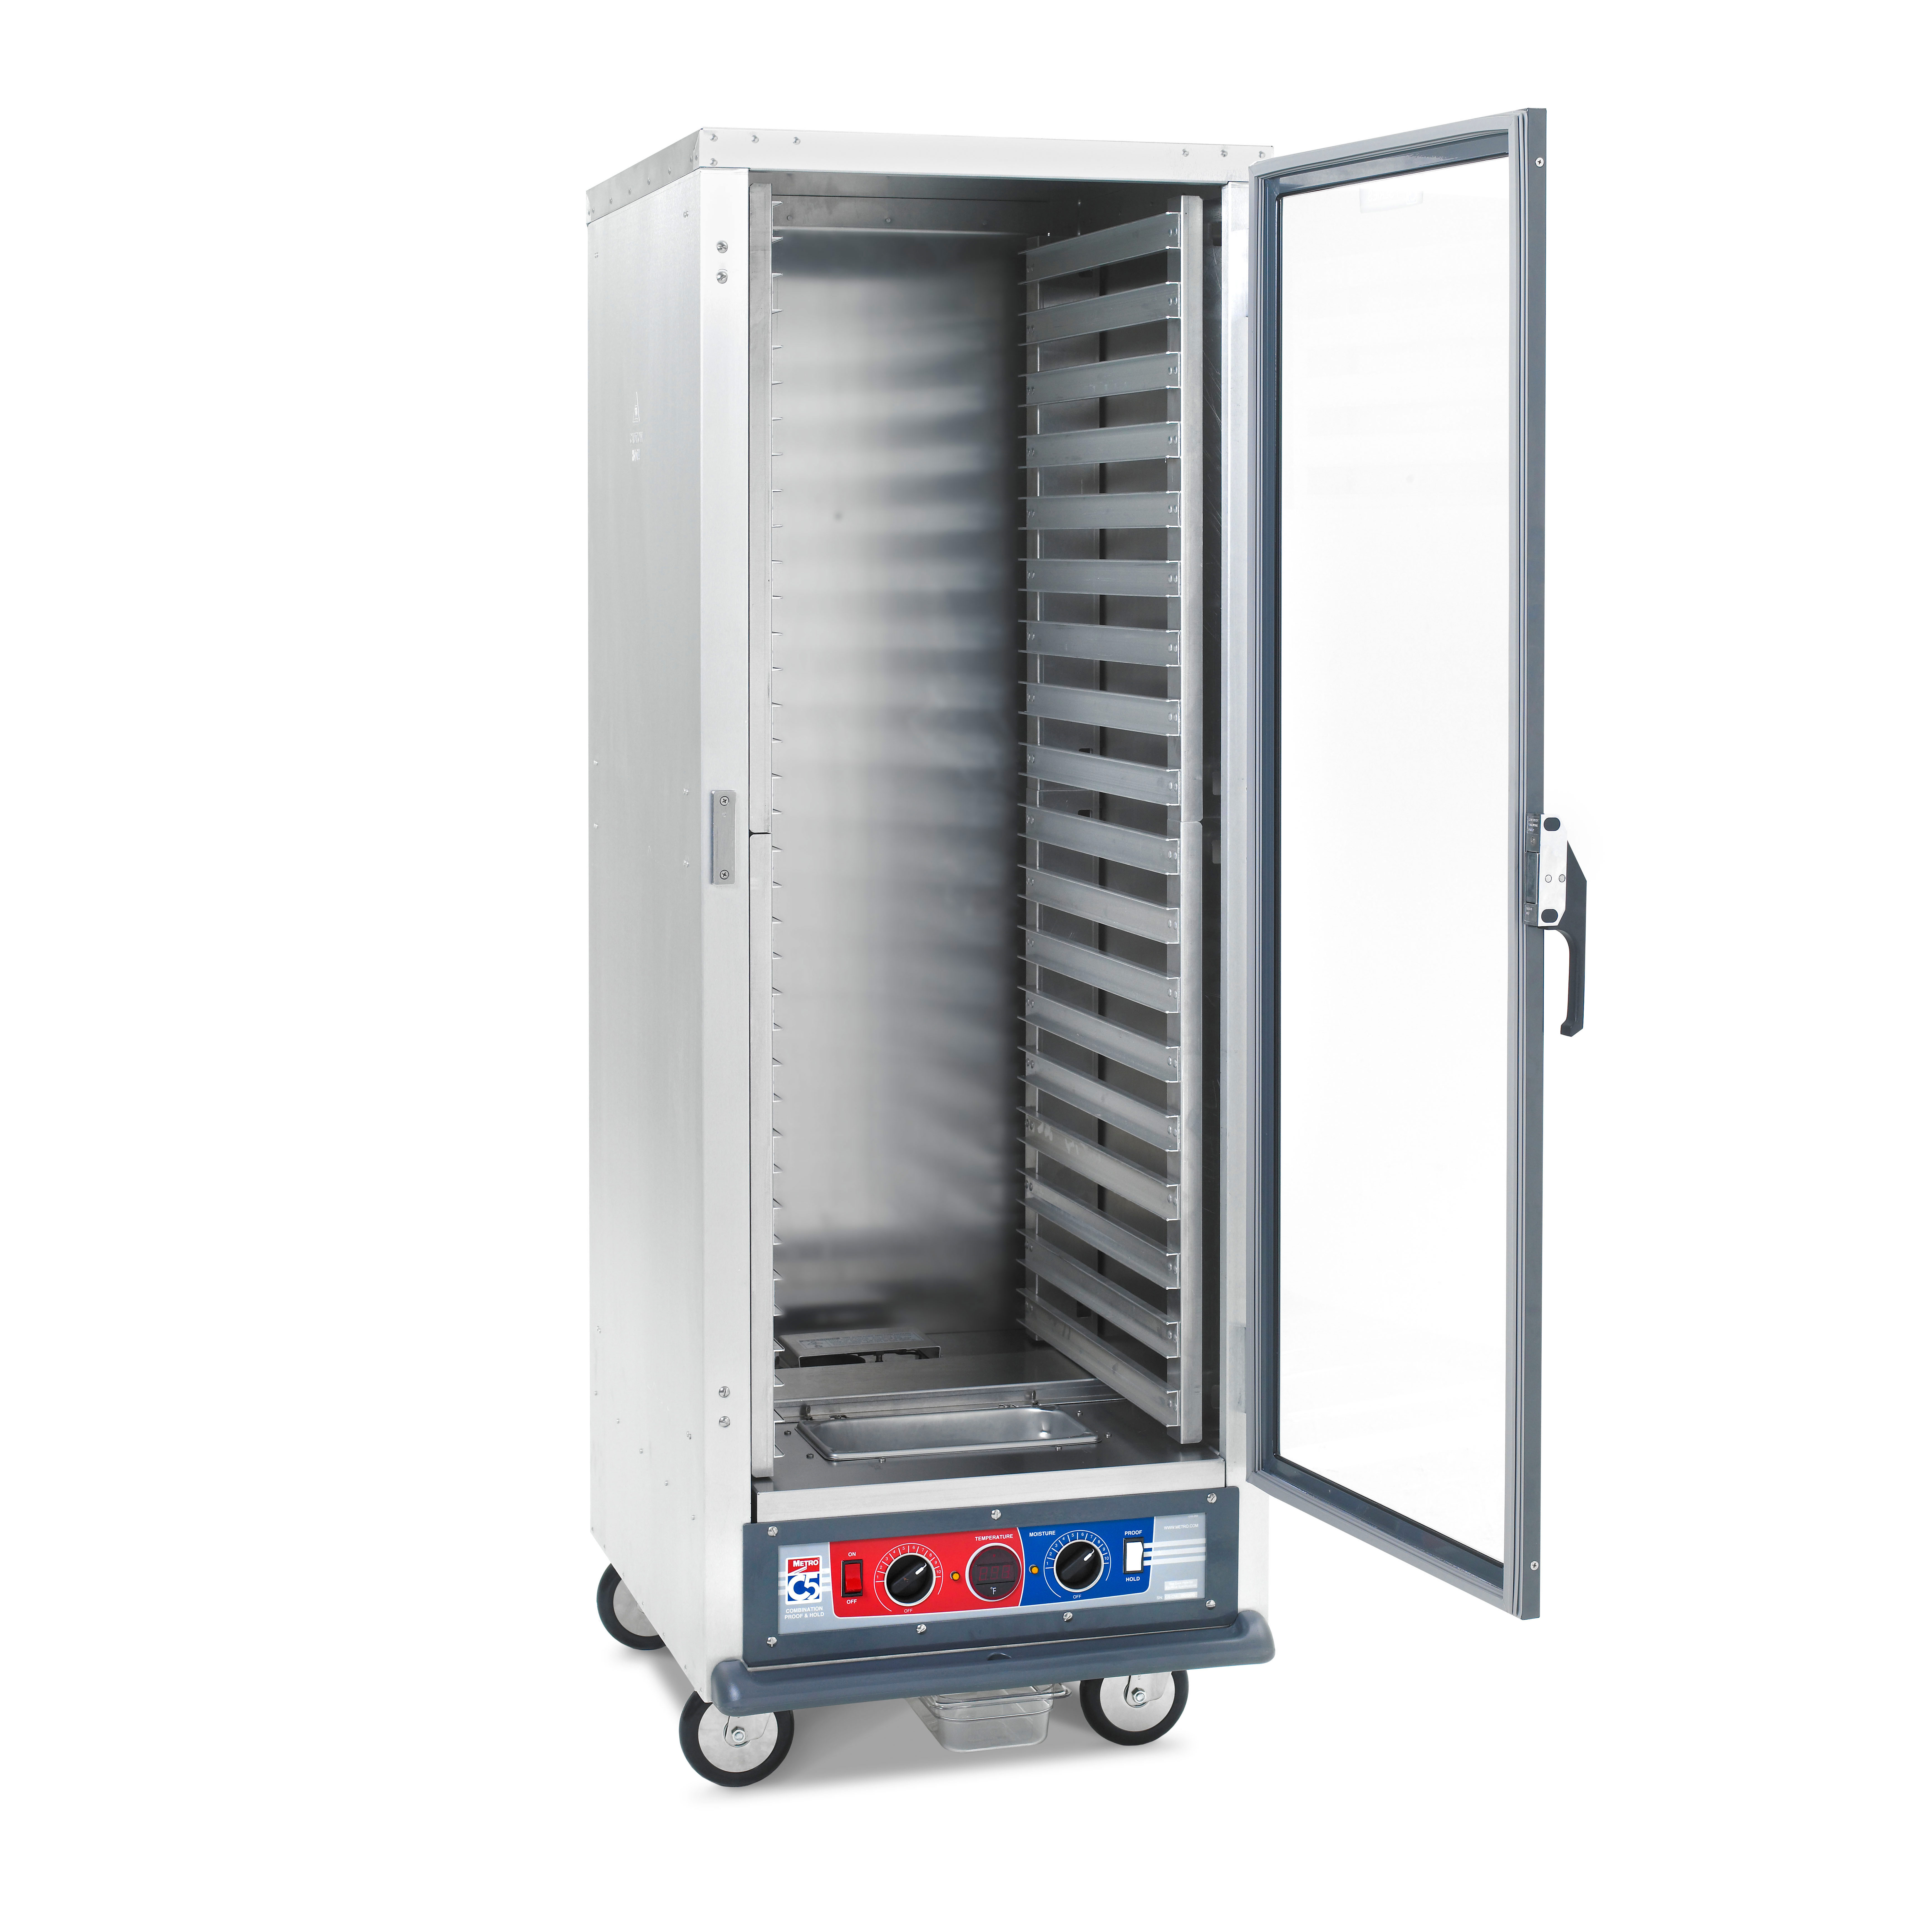 Metro C519-CFC-L Heated Holding Proofing Cabinet, Mobile